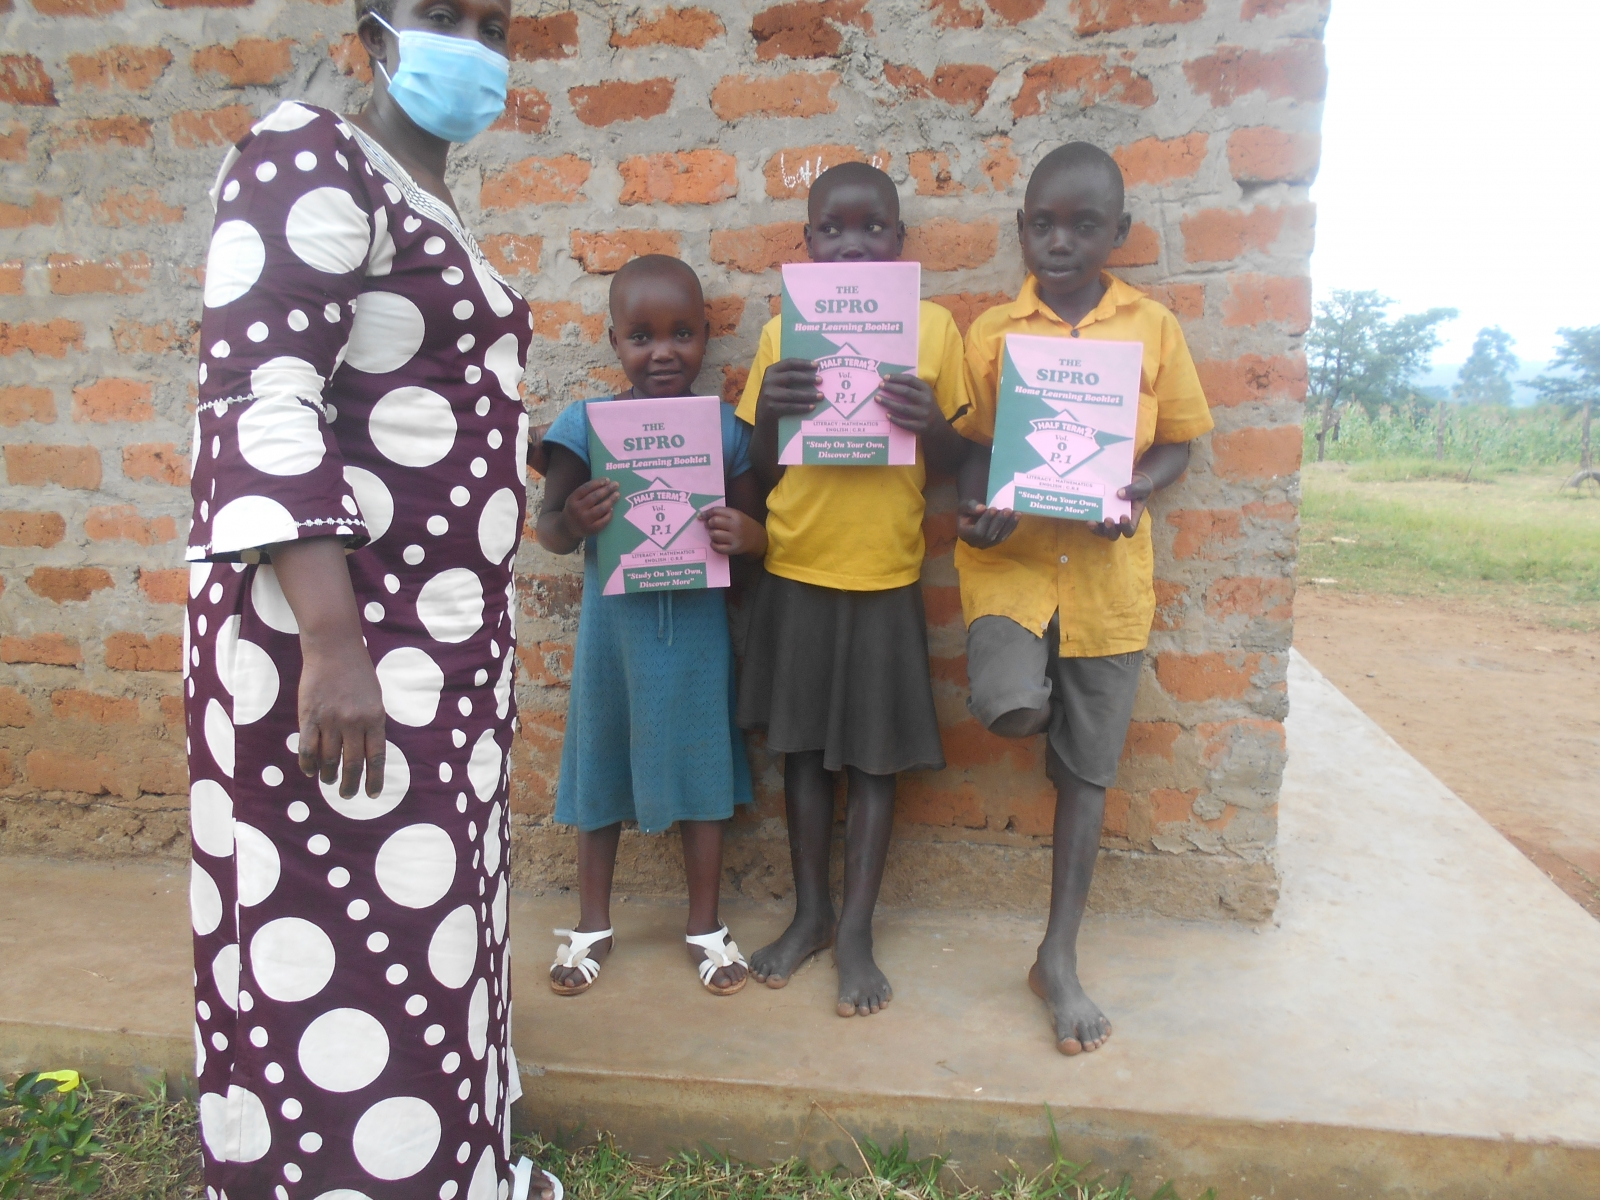 Jovia-and-friends-at-the-Family-Nursery-School-receive-study-materials